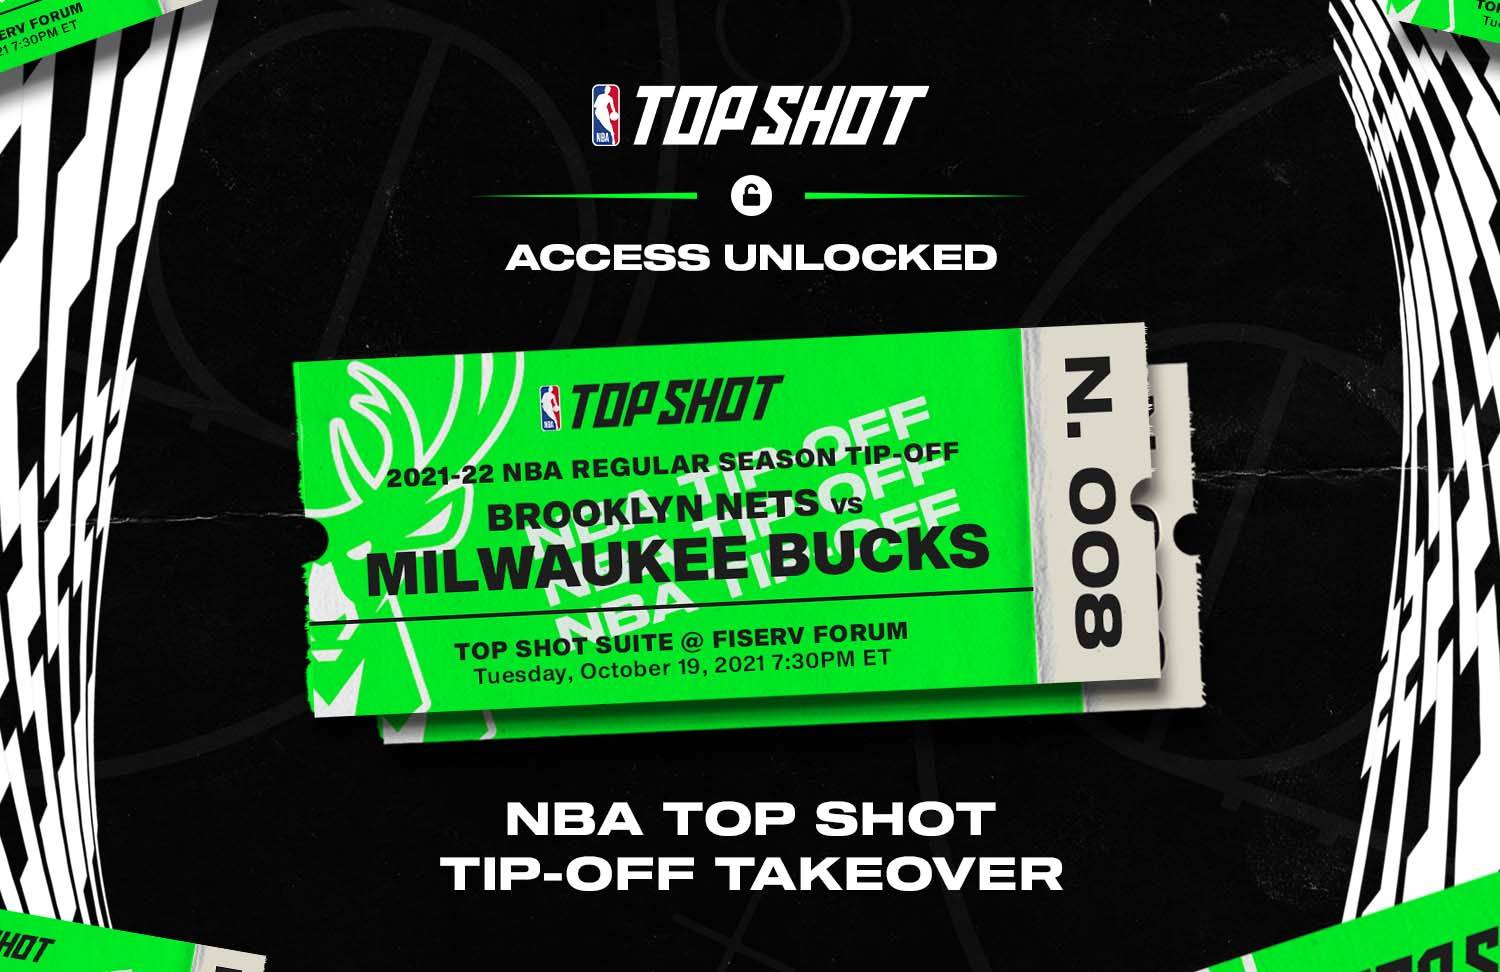 We are sending 38 collectors and their guests to Milwaukee for NBA Tip-Off.